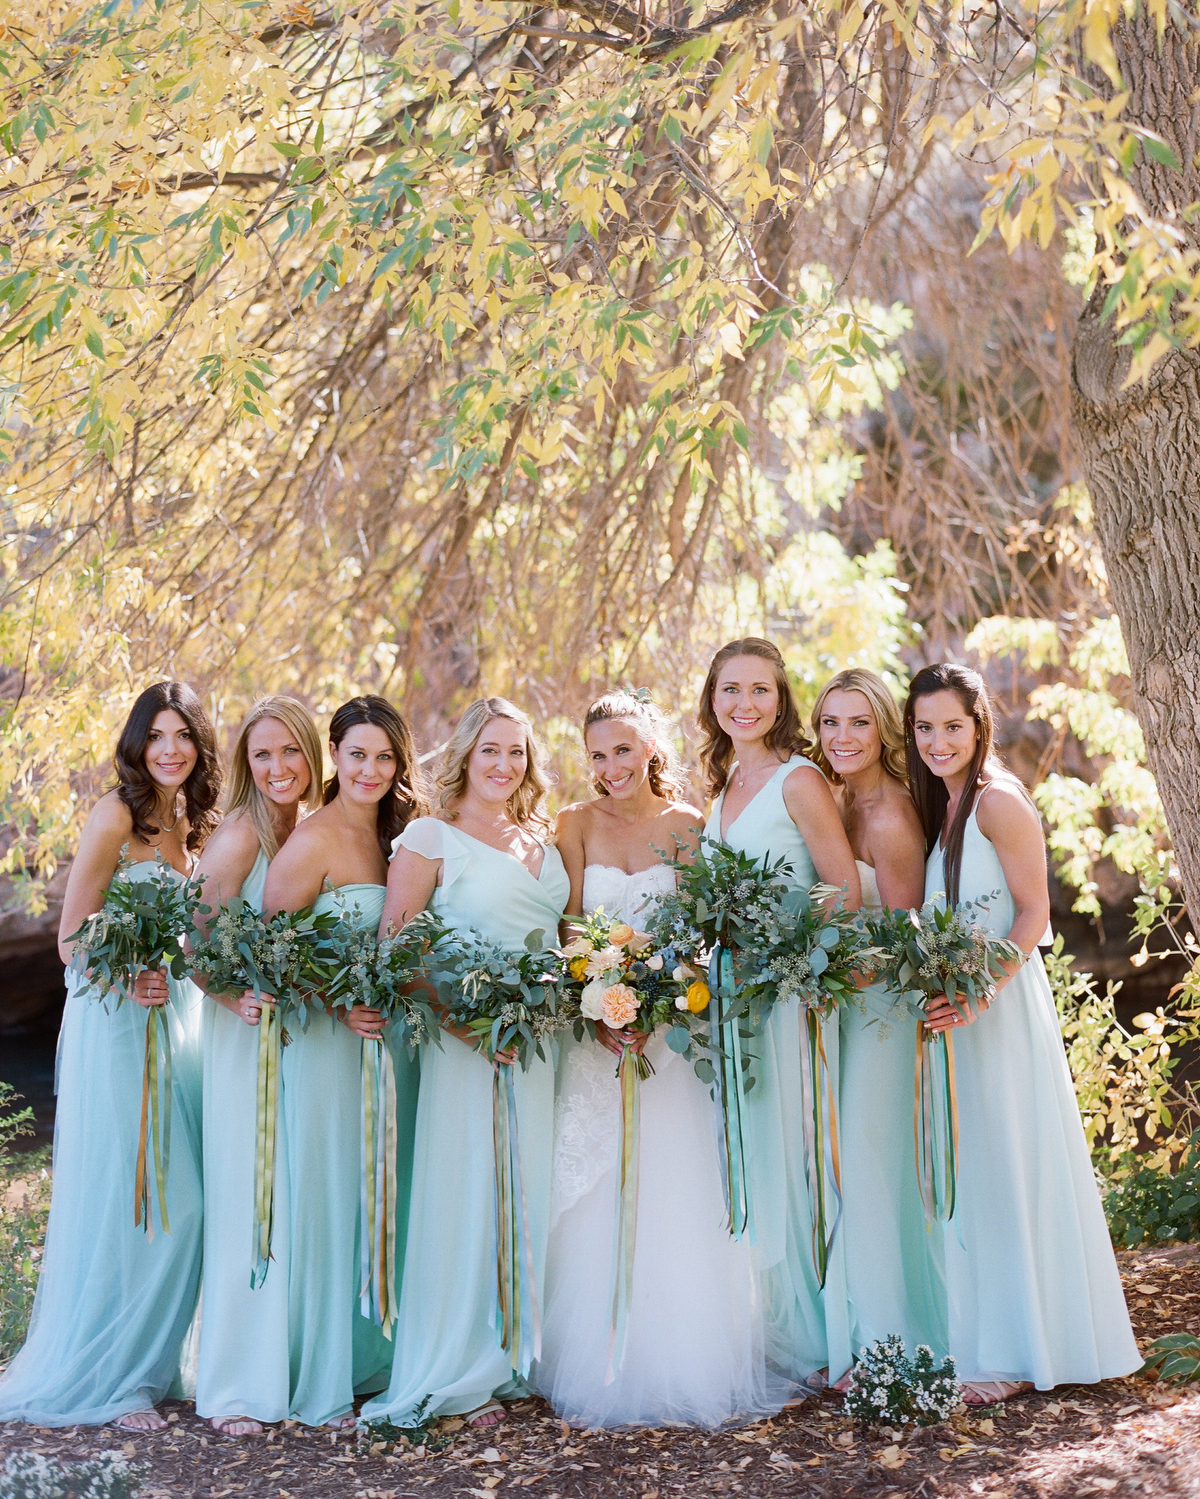 lana-danny-wedding-bridesmaids-222-s111831-0315.jpg